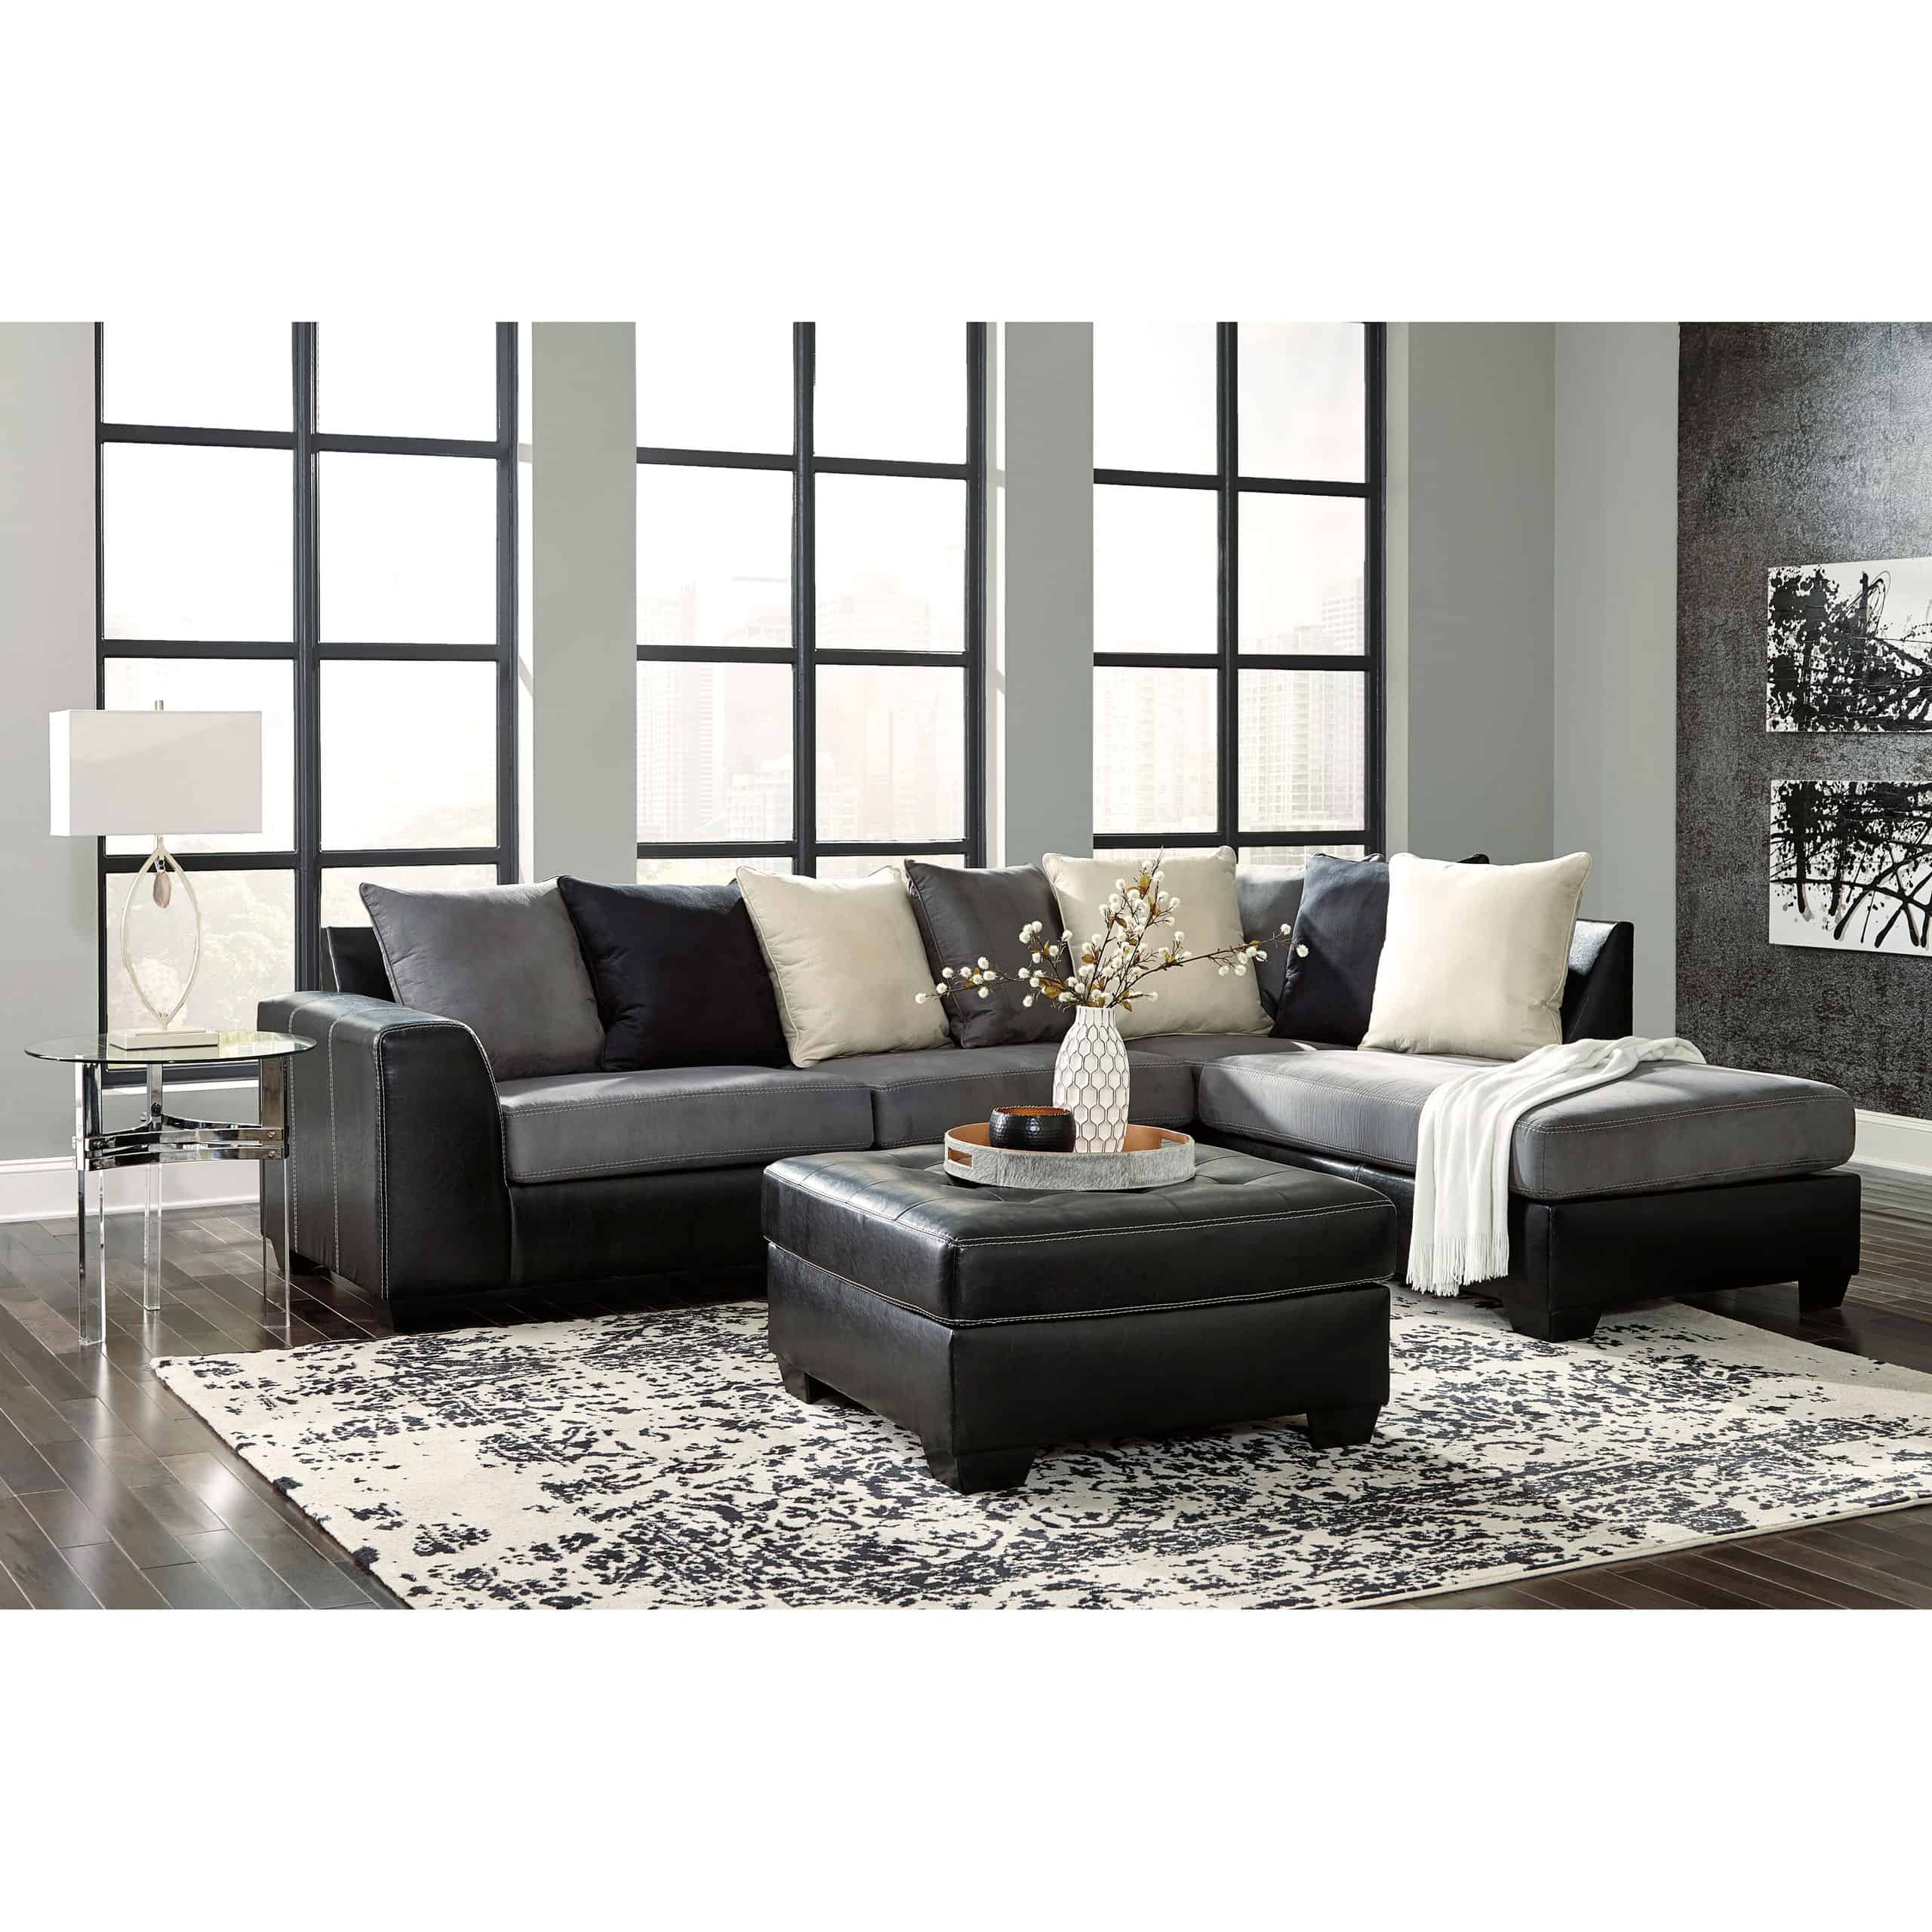 Jacurso 2 Piece Raf Chaise Sectional   Furnishmyhome (View 4 of 15)